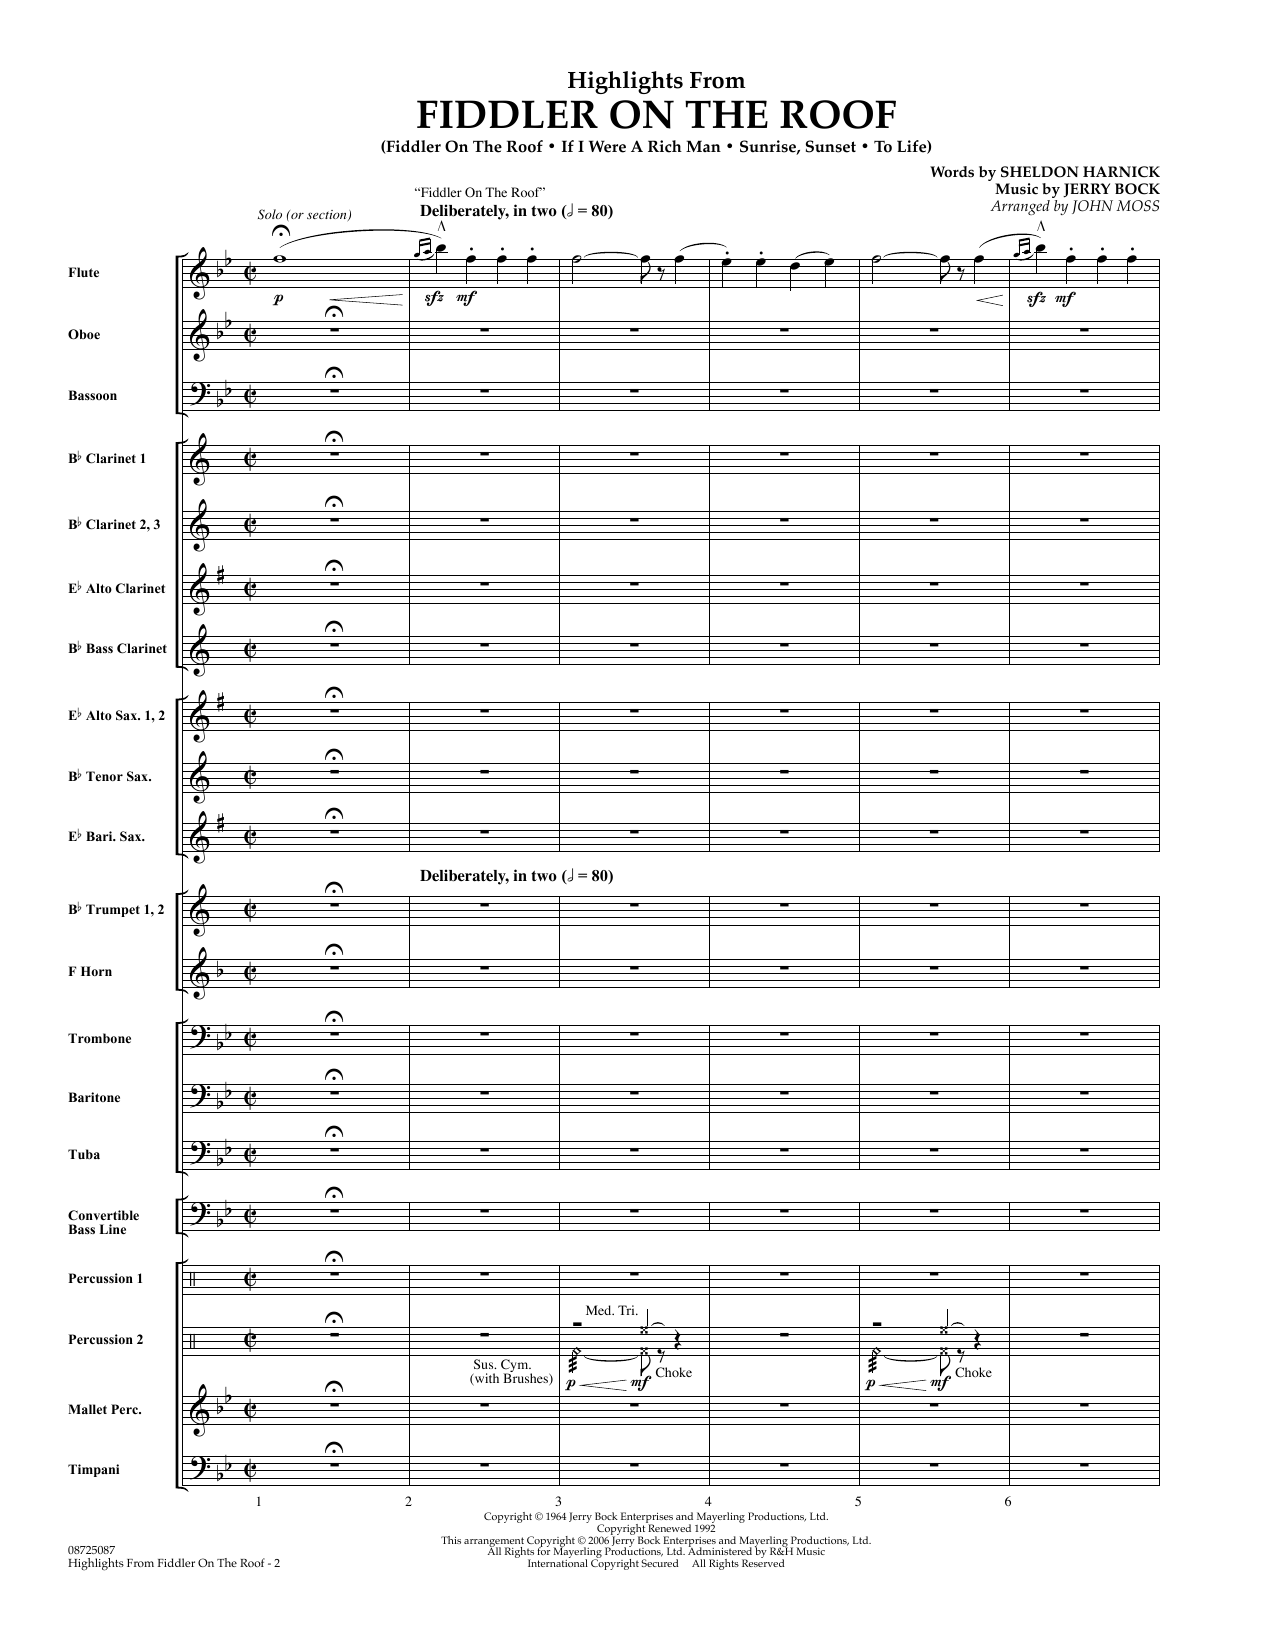 John Moss Highlights From Fiddler On The Roof - Full Score sheet music preview music notes and score for Concert Band including 23 page(s)